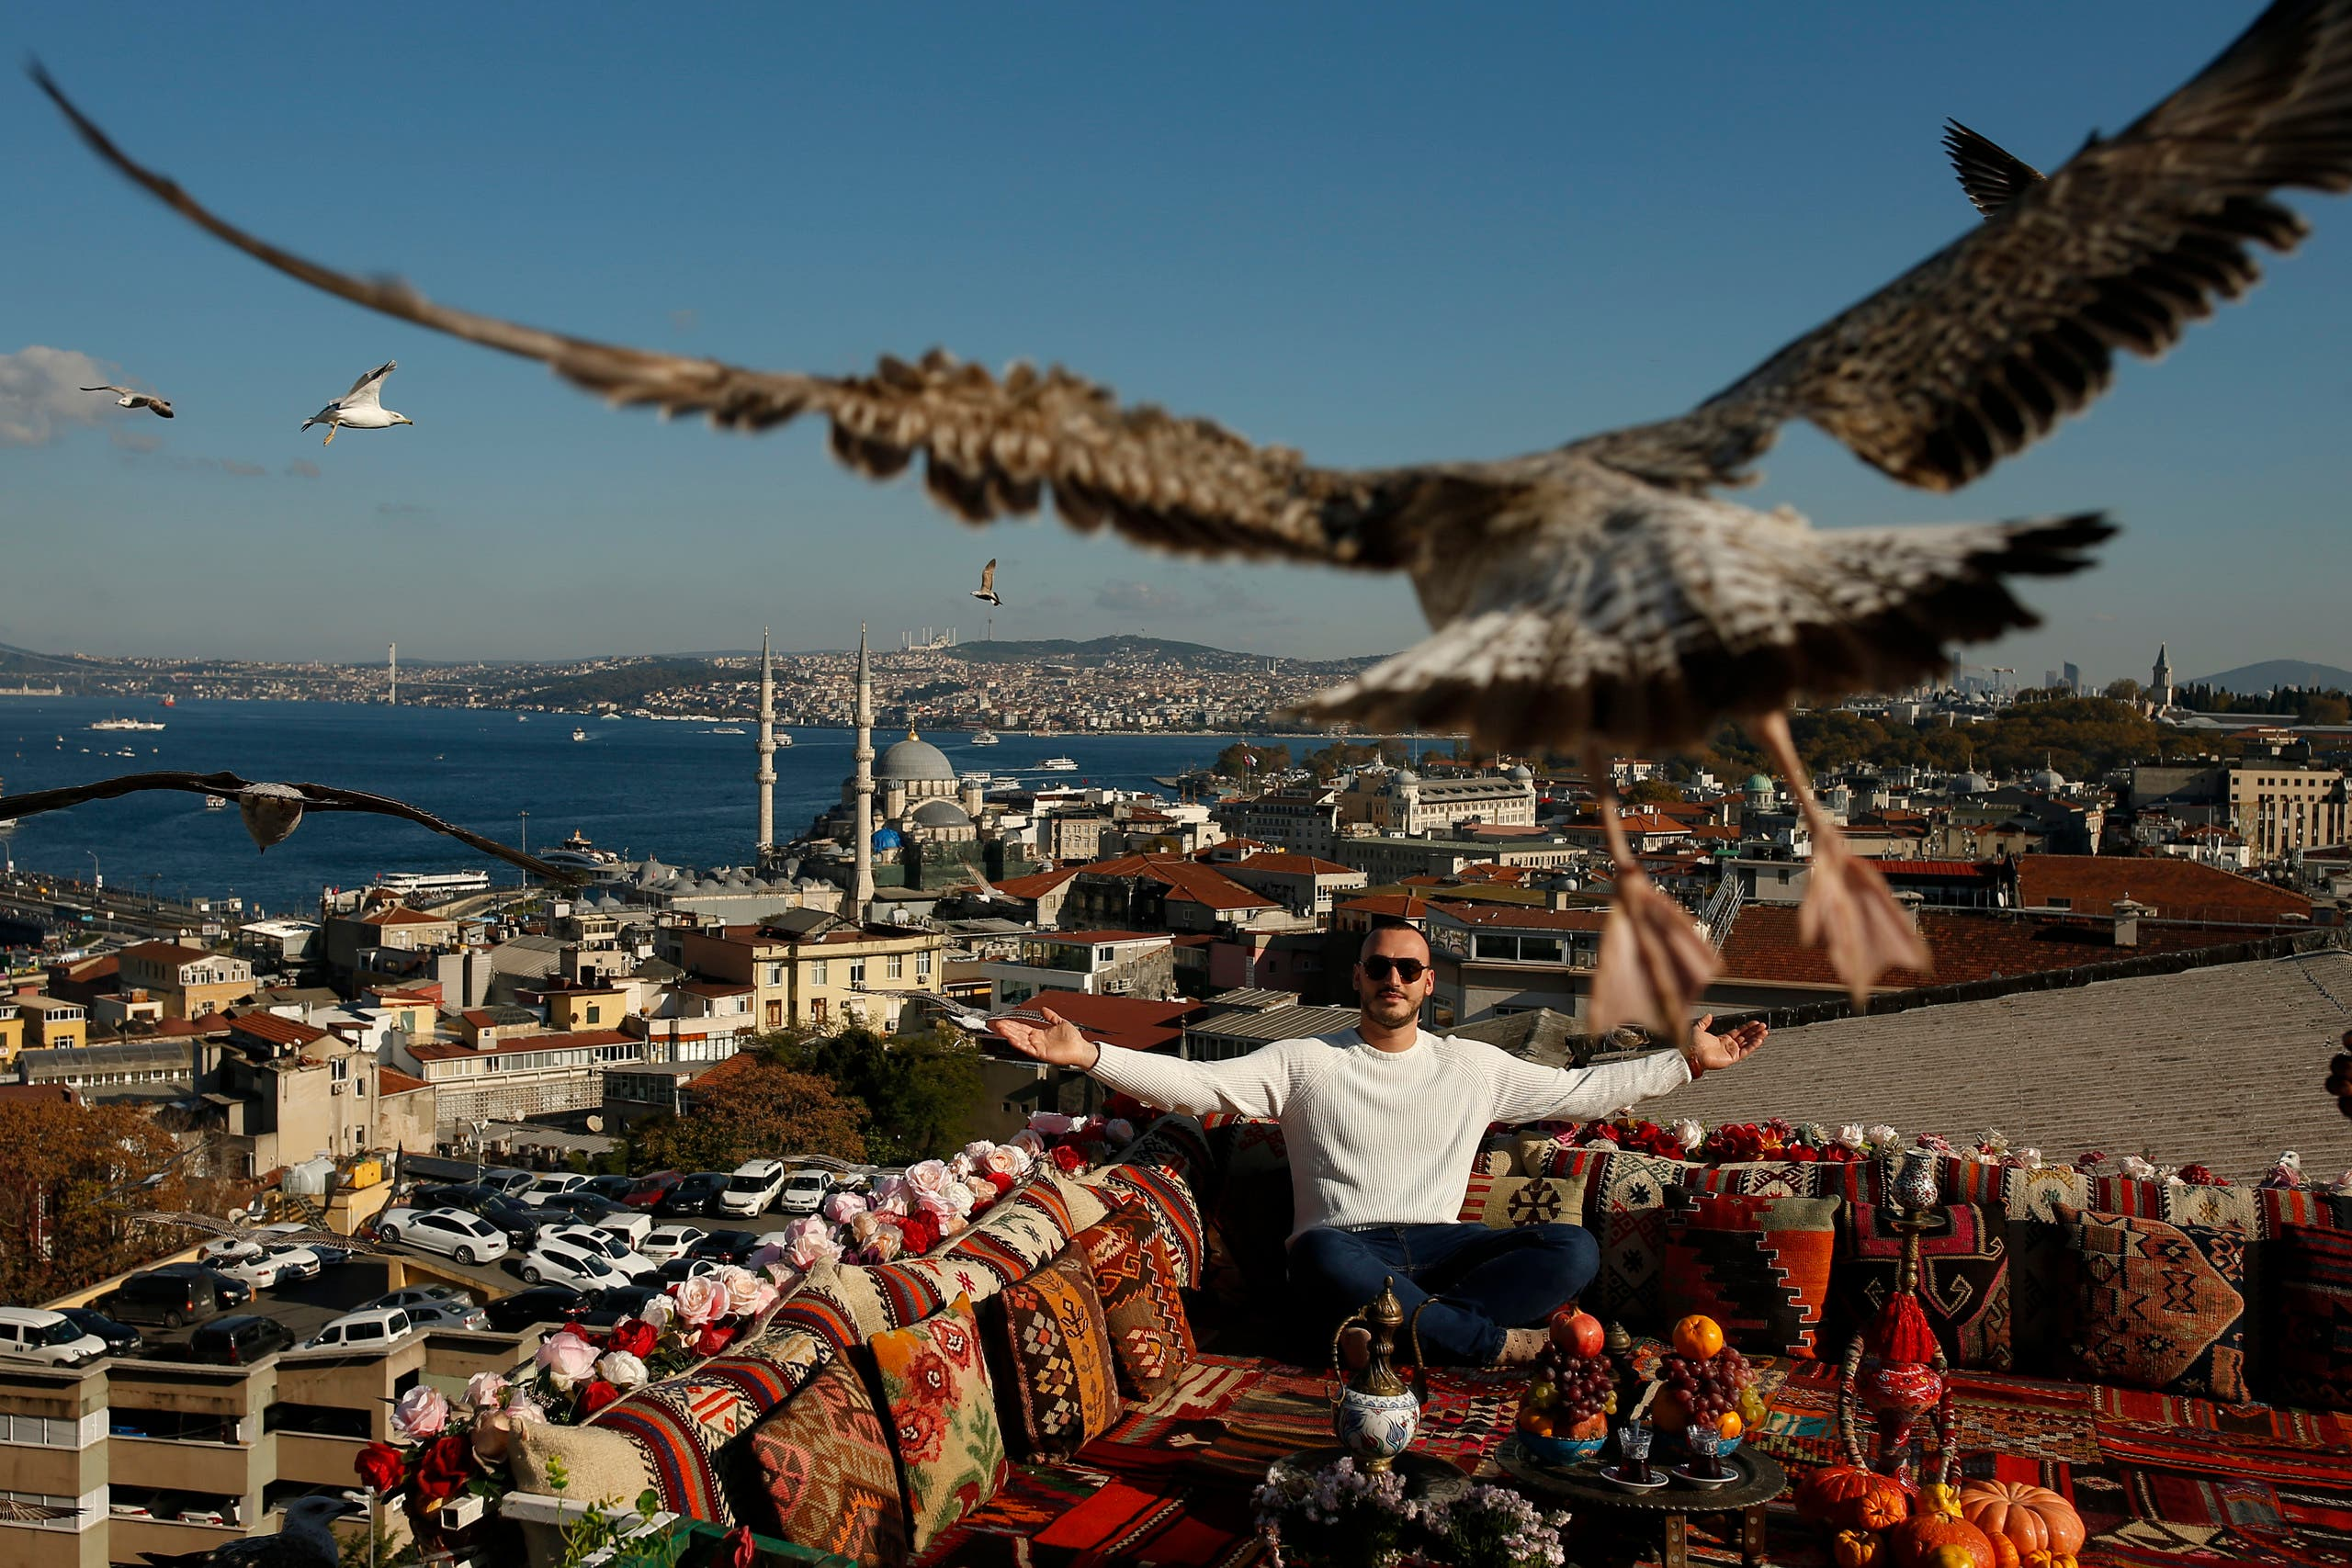 A seagull files over a man sitting at a coffee shop backdropped by the Bosporus Strait in Istanbul on Nov. 17, 2020. (AP)